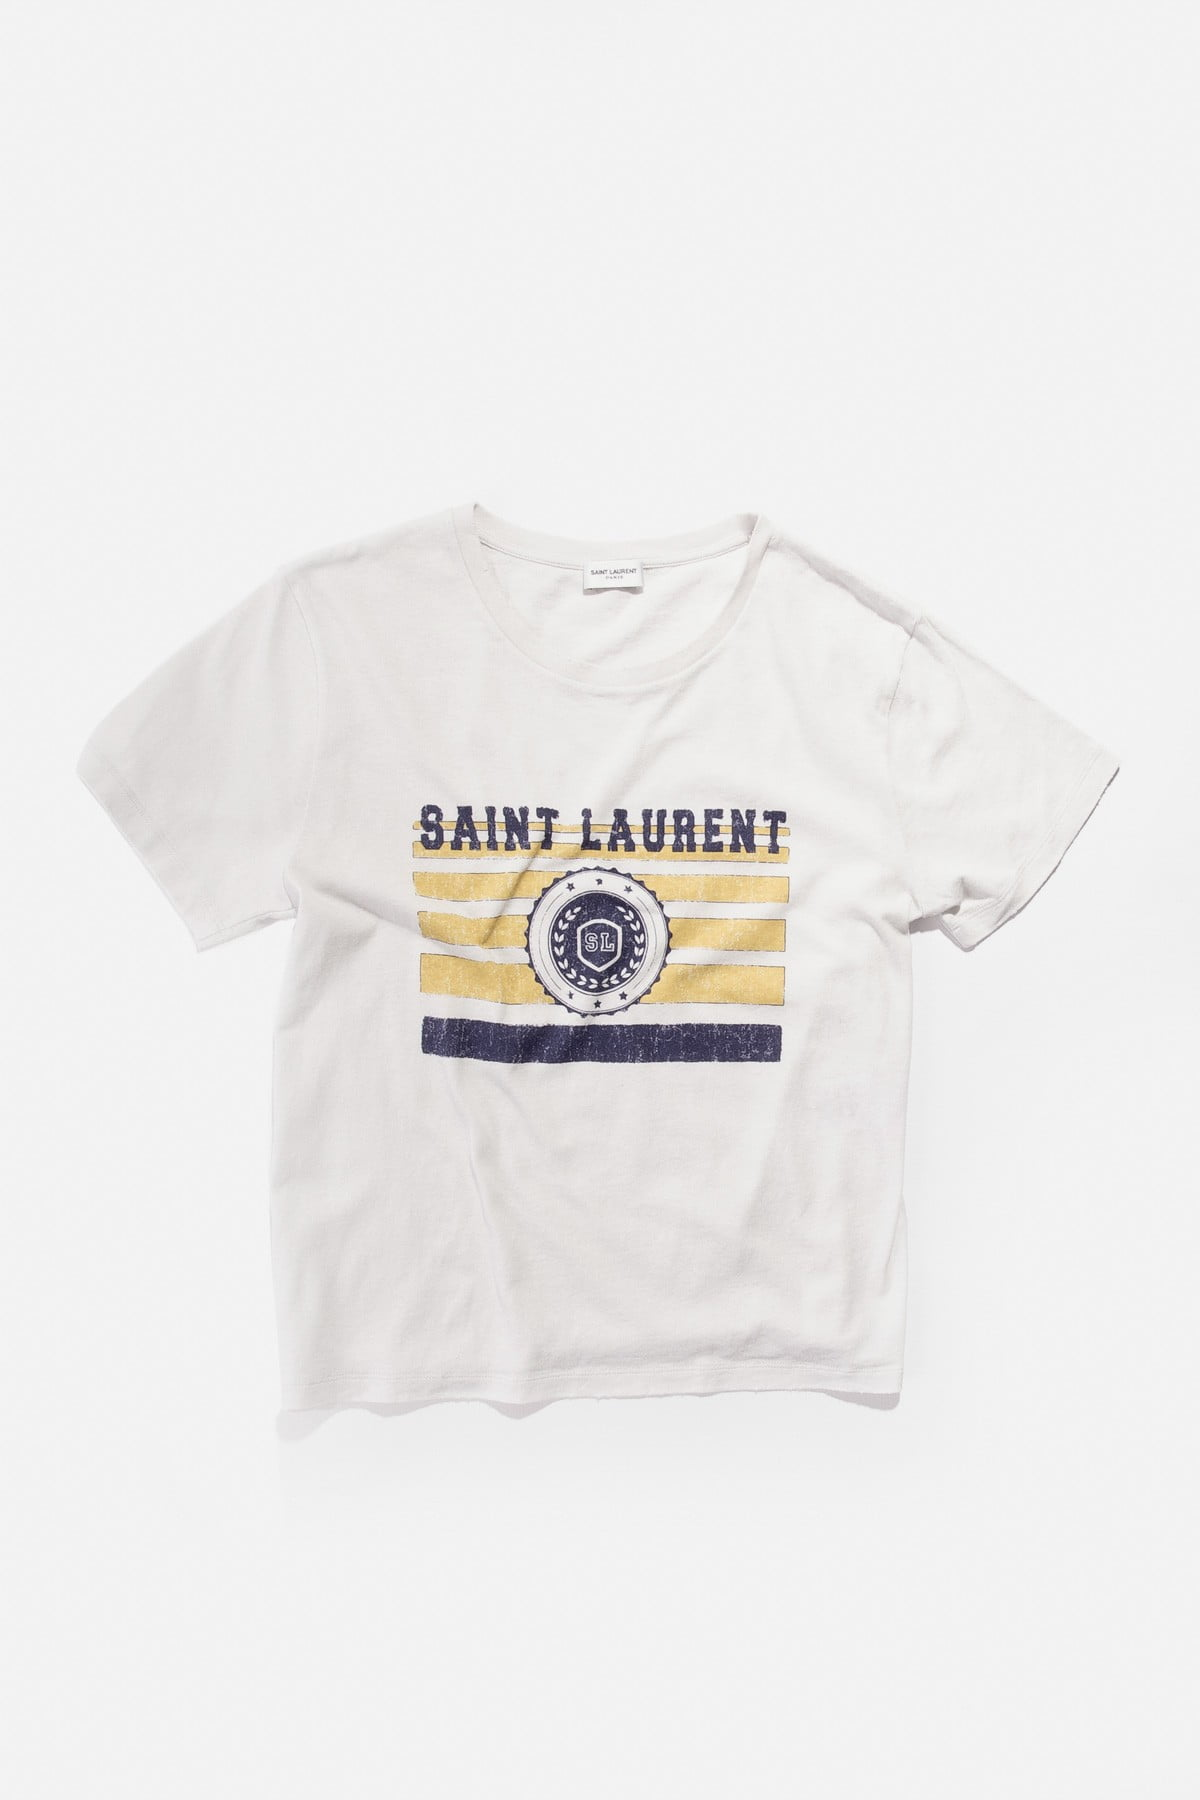 SAINT LAURENT | UNIVERSITY T-SHIRT